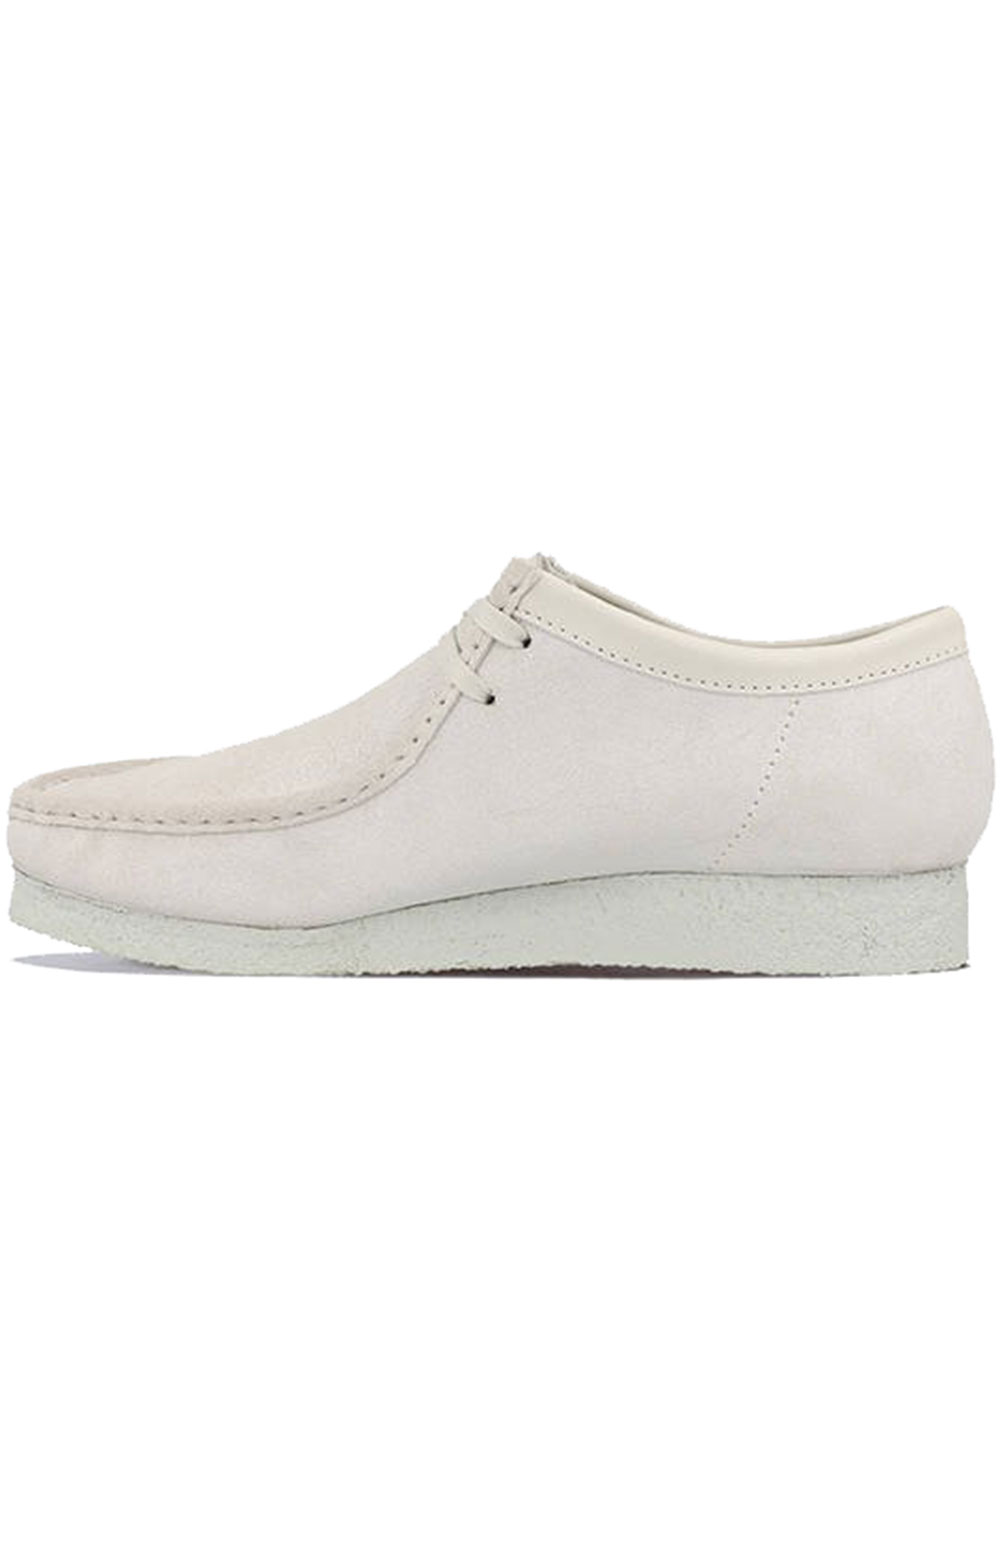 (26158421) Wallabee Shoes - White Suede 3